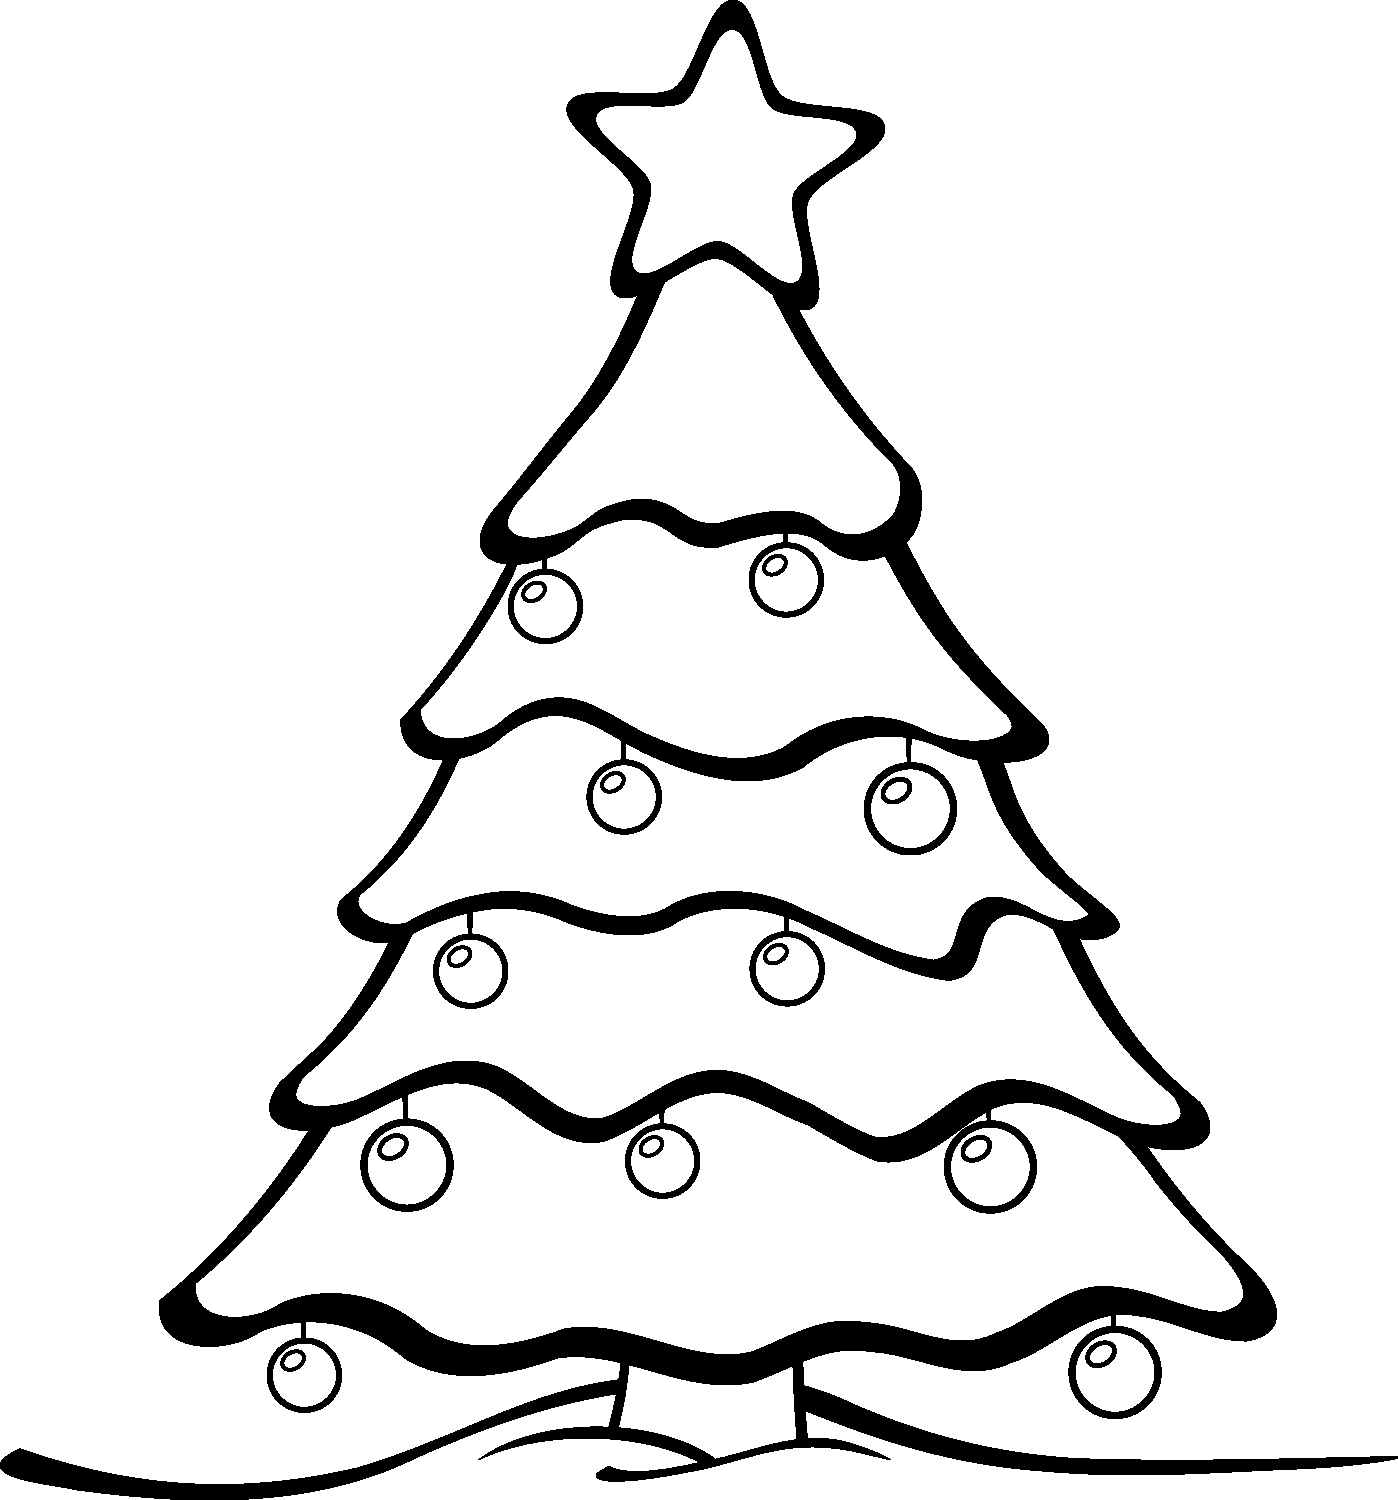 Christmas Tree Outline Drawing